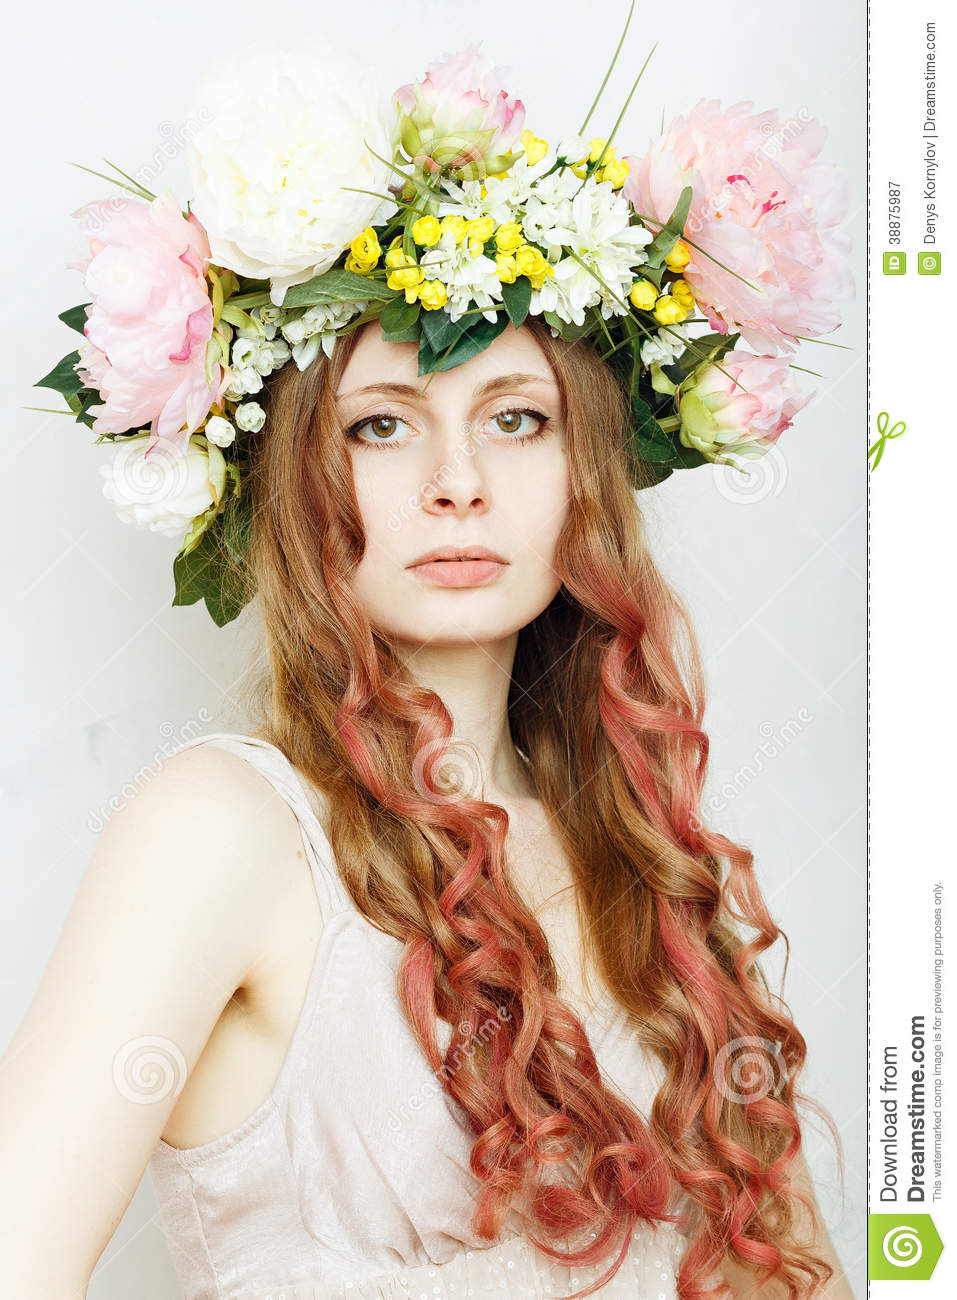 Pretty Girl With Flower Crown On Head Stock Image Image Of Nature